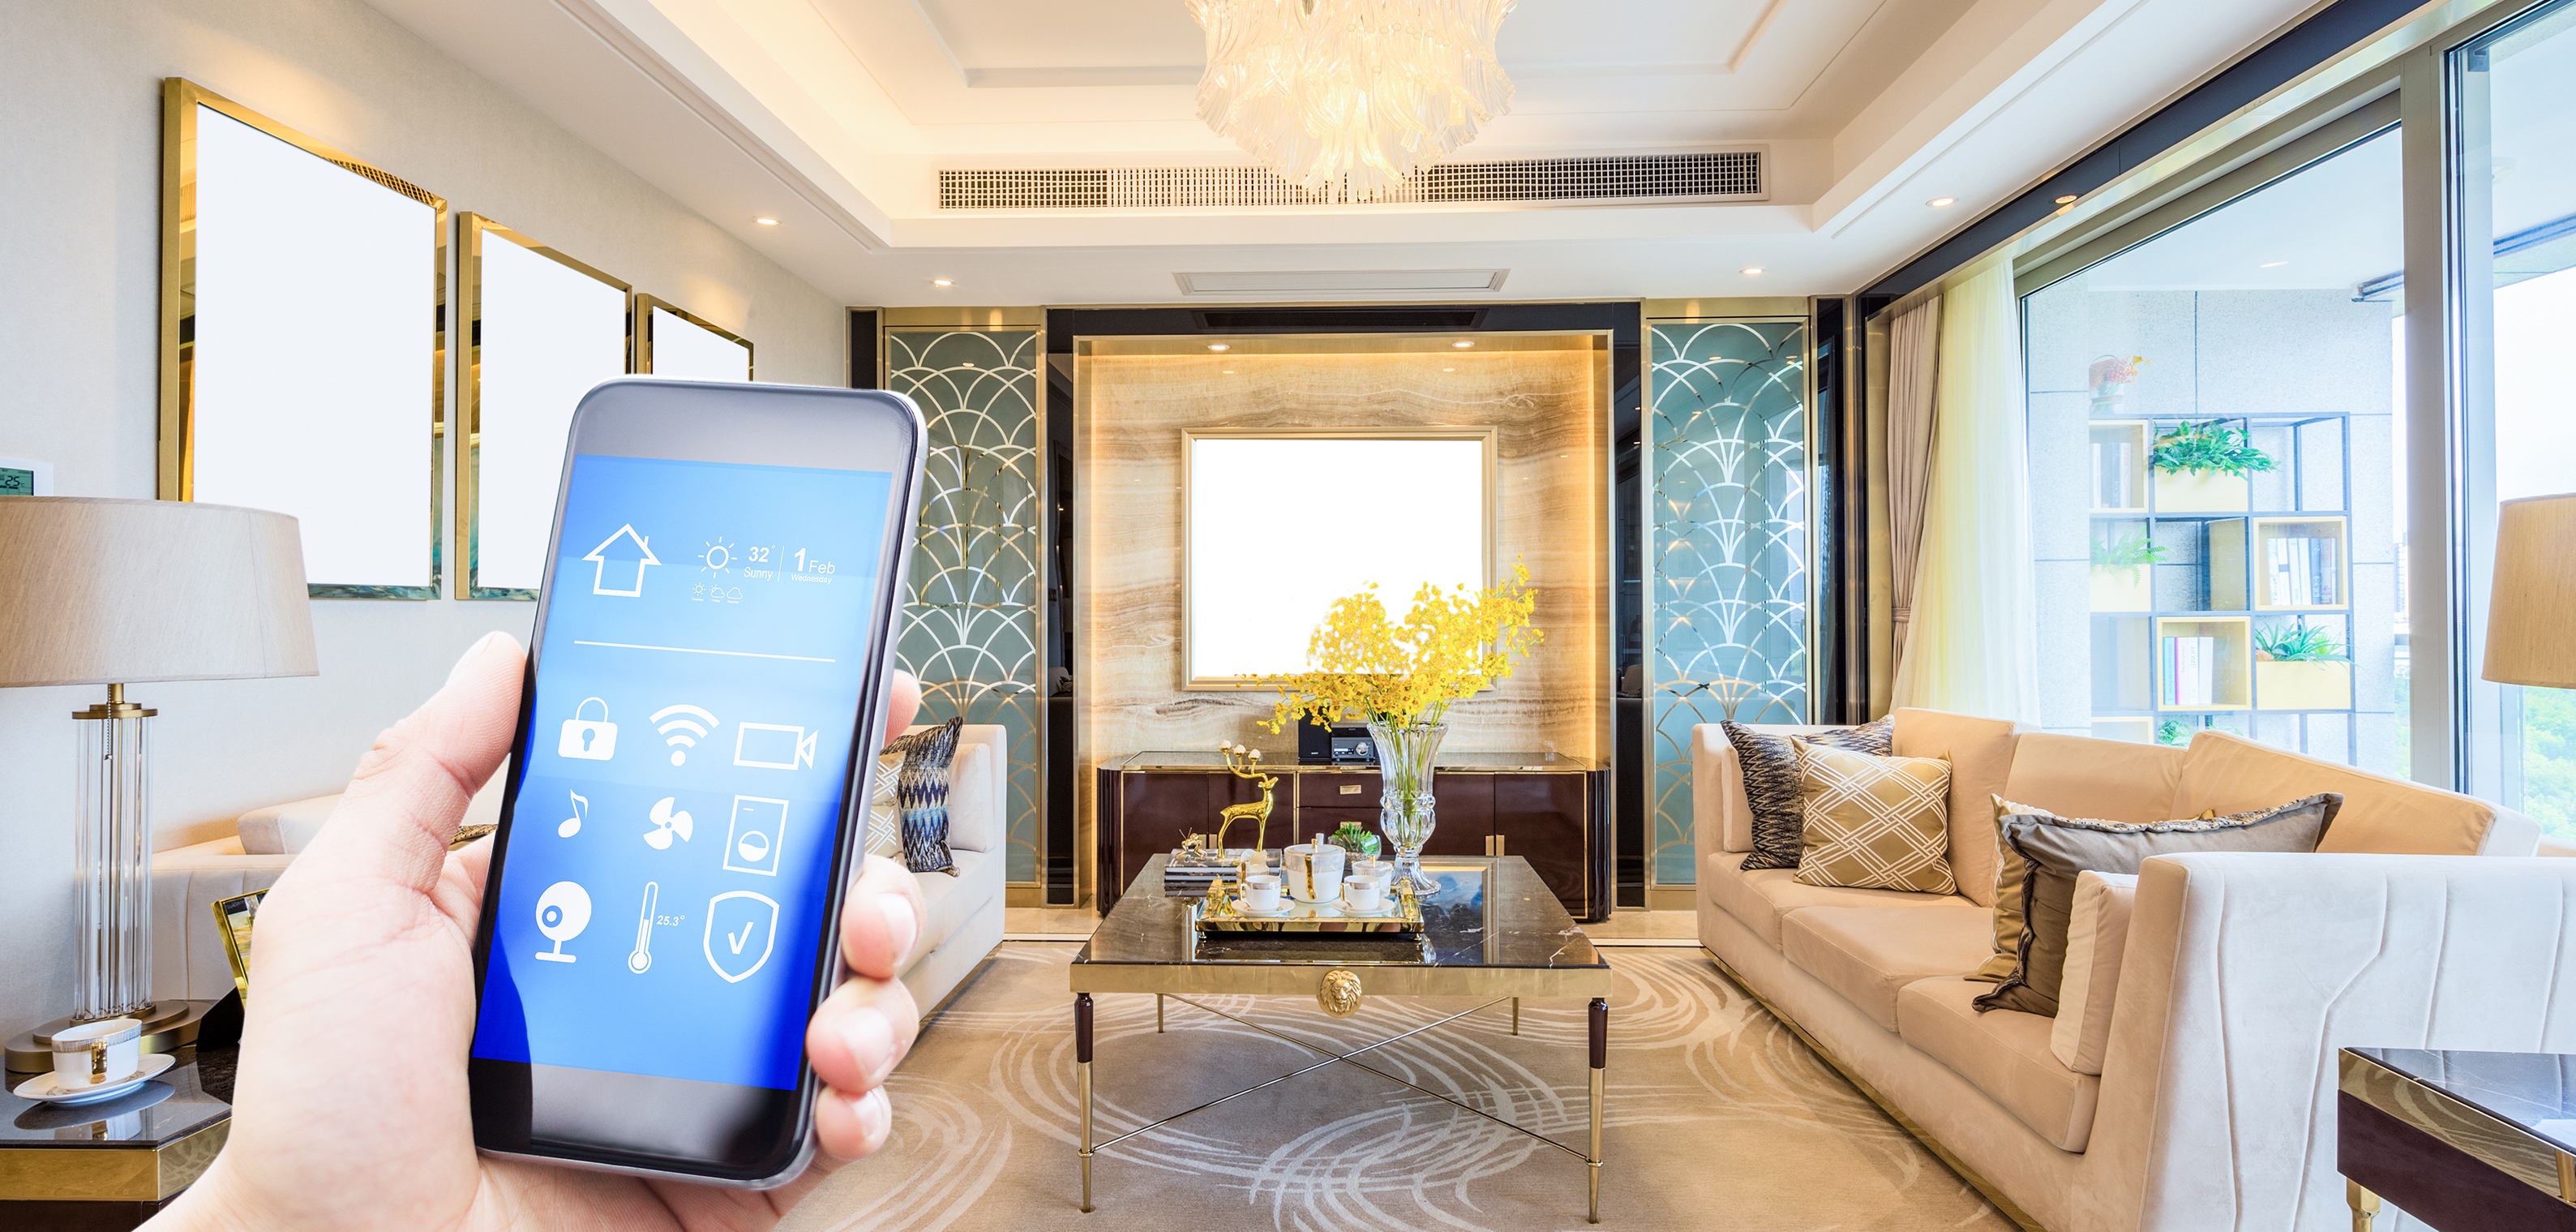 NEXT BIG THING: INTELLIGENT HOMES FOR A SMARTER FUTURE